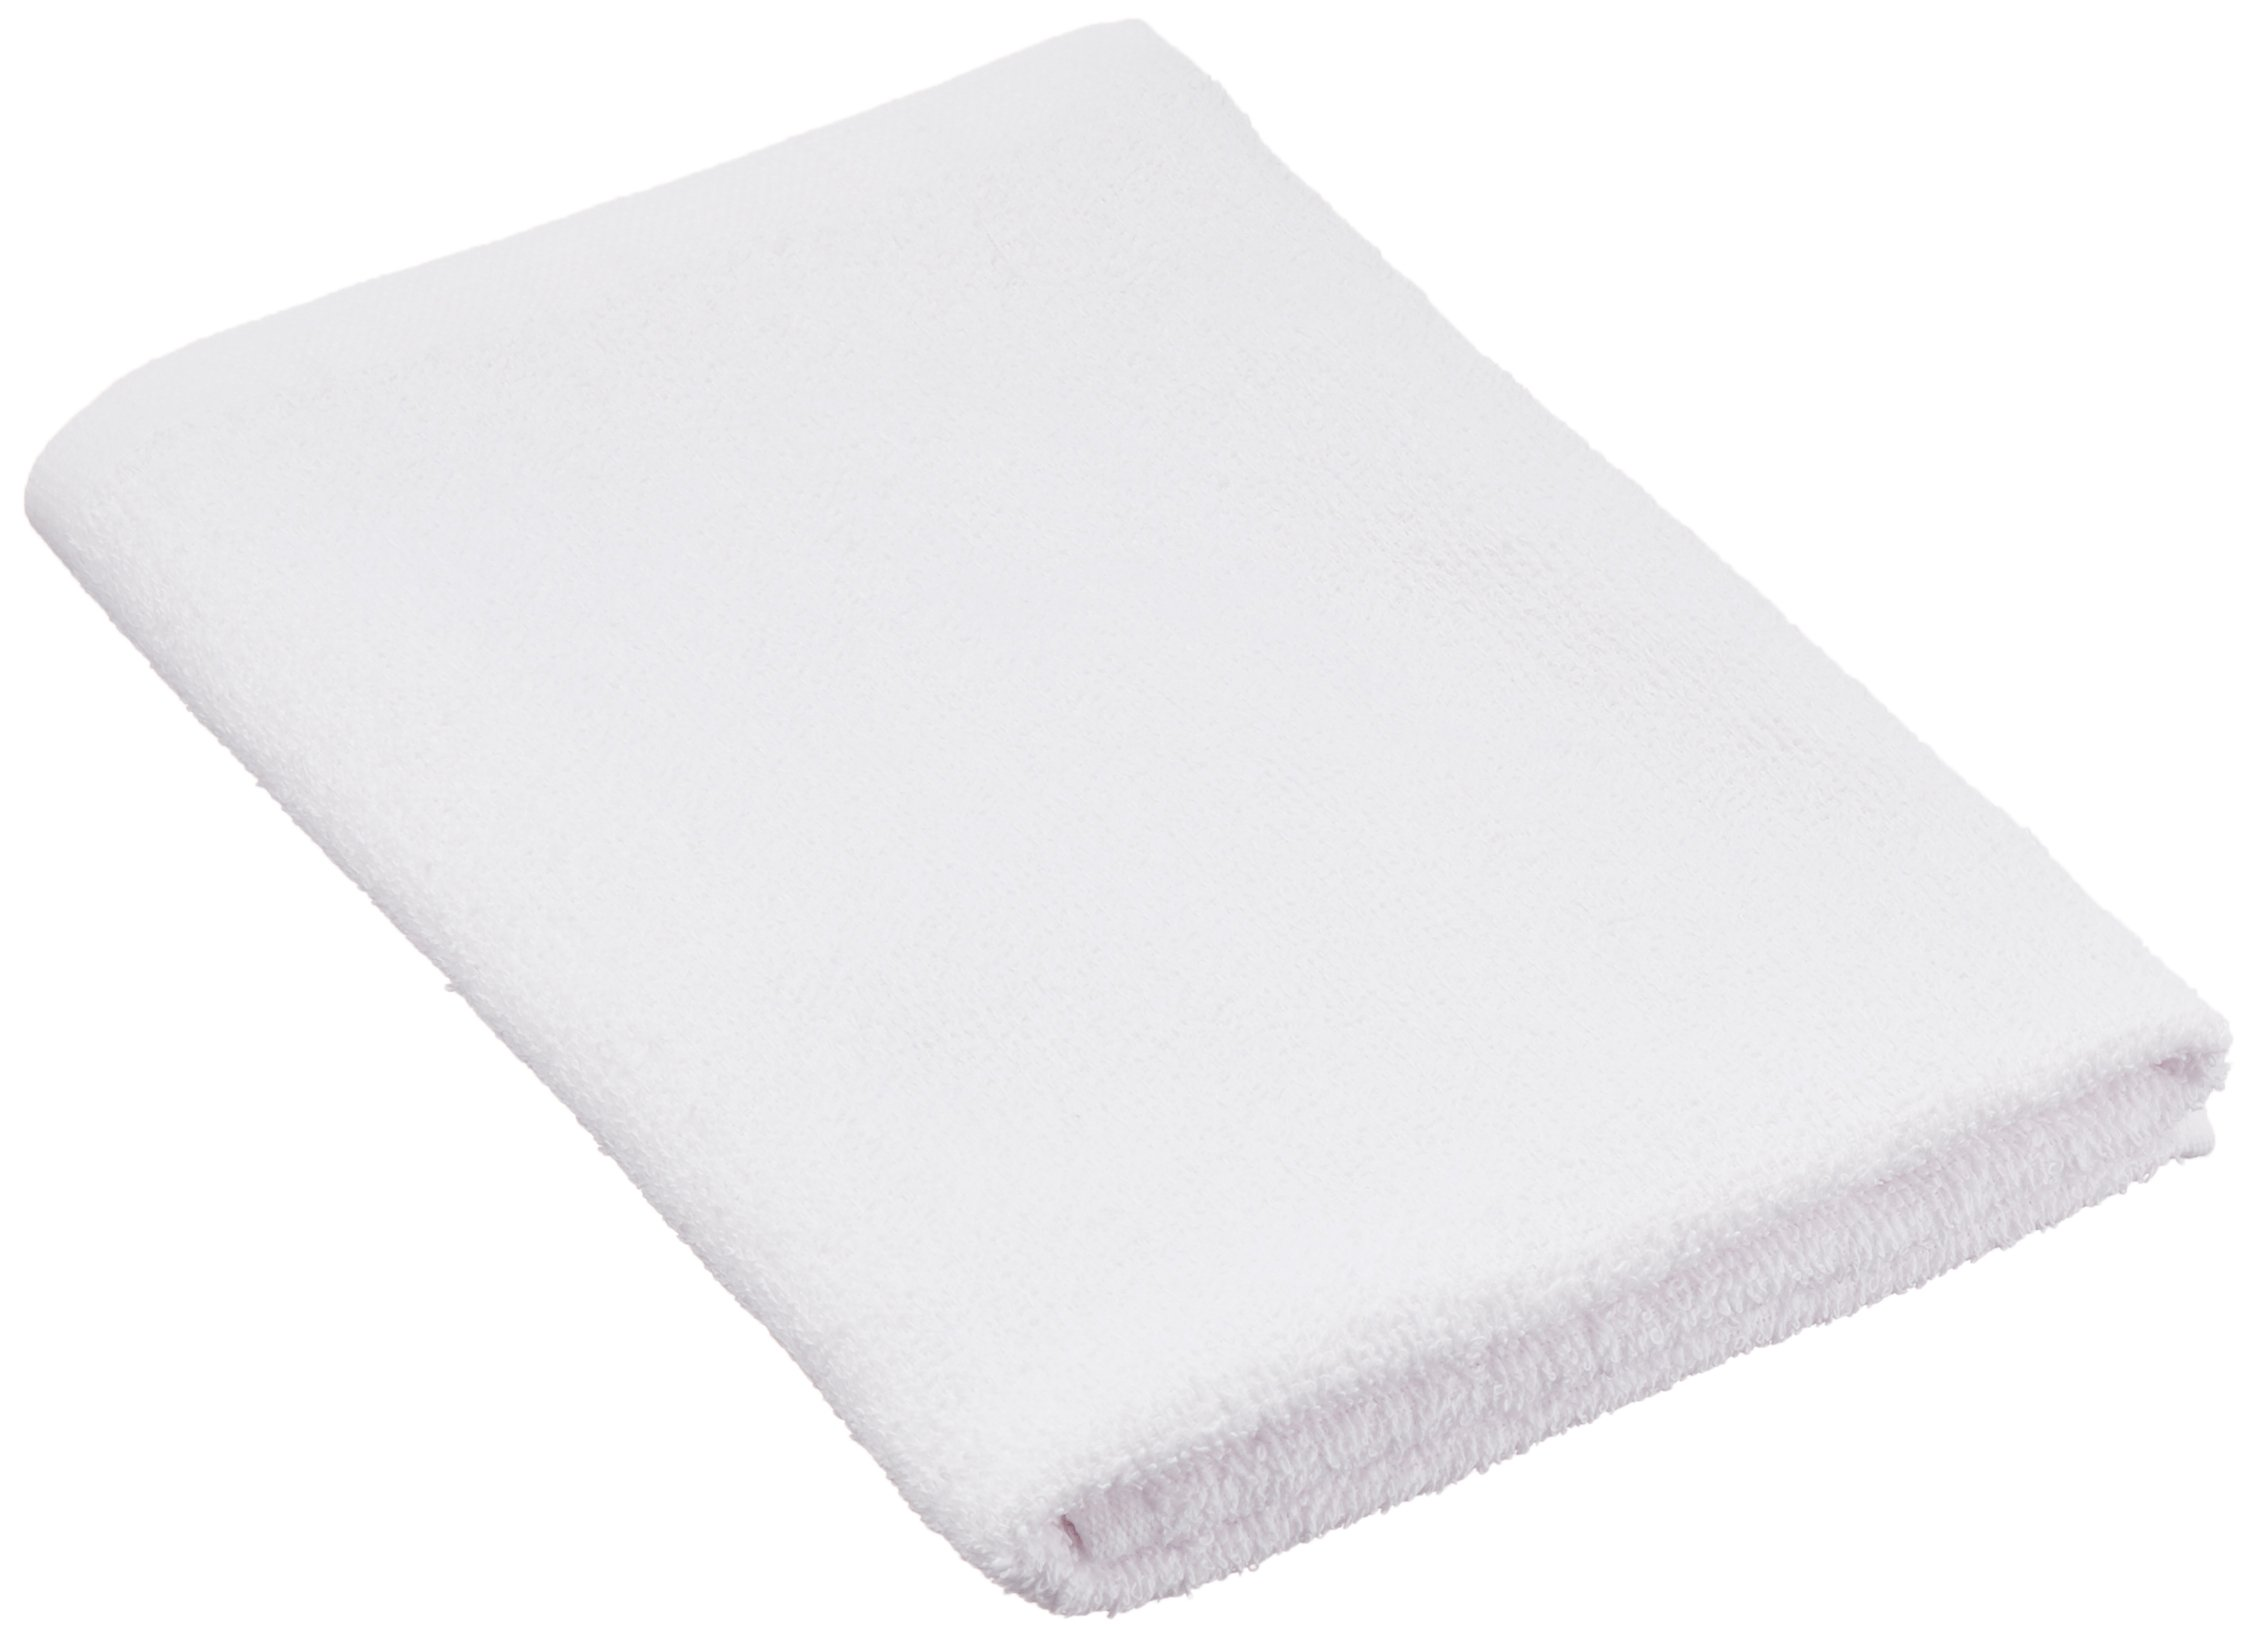 Sammons Preston Terry Cloth Towels, 20'' x 40'', Pack of 12, White, Clinical Terry Towels, Cleaning Wash Cloth for Disinfecting Hospital Supplies and Surfaces, Machine Washable Commercial Grade Rag